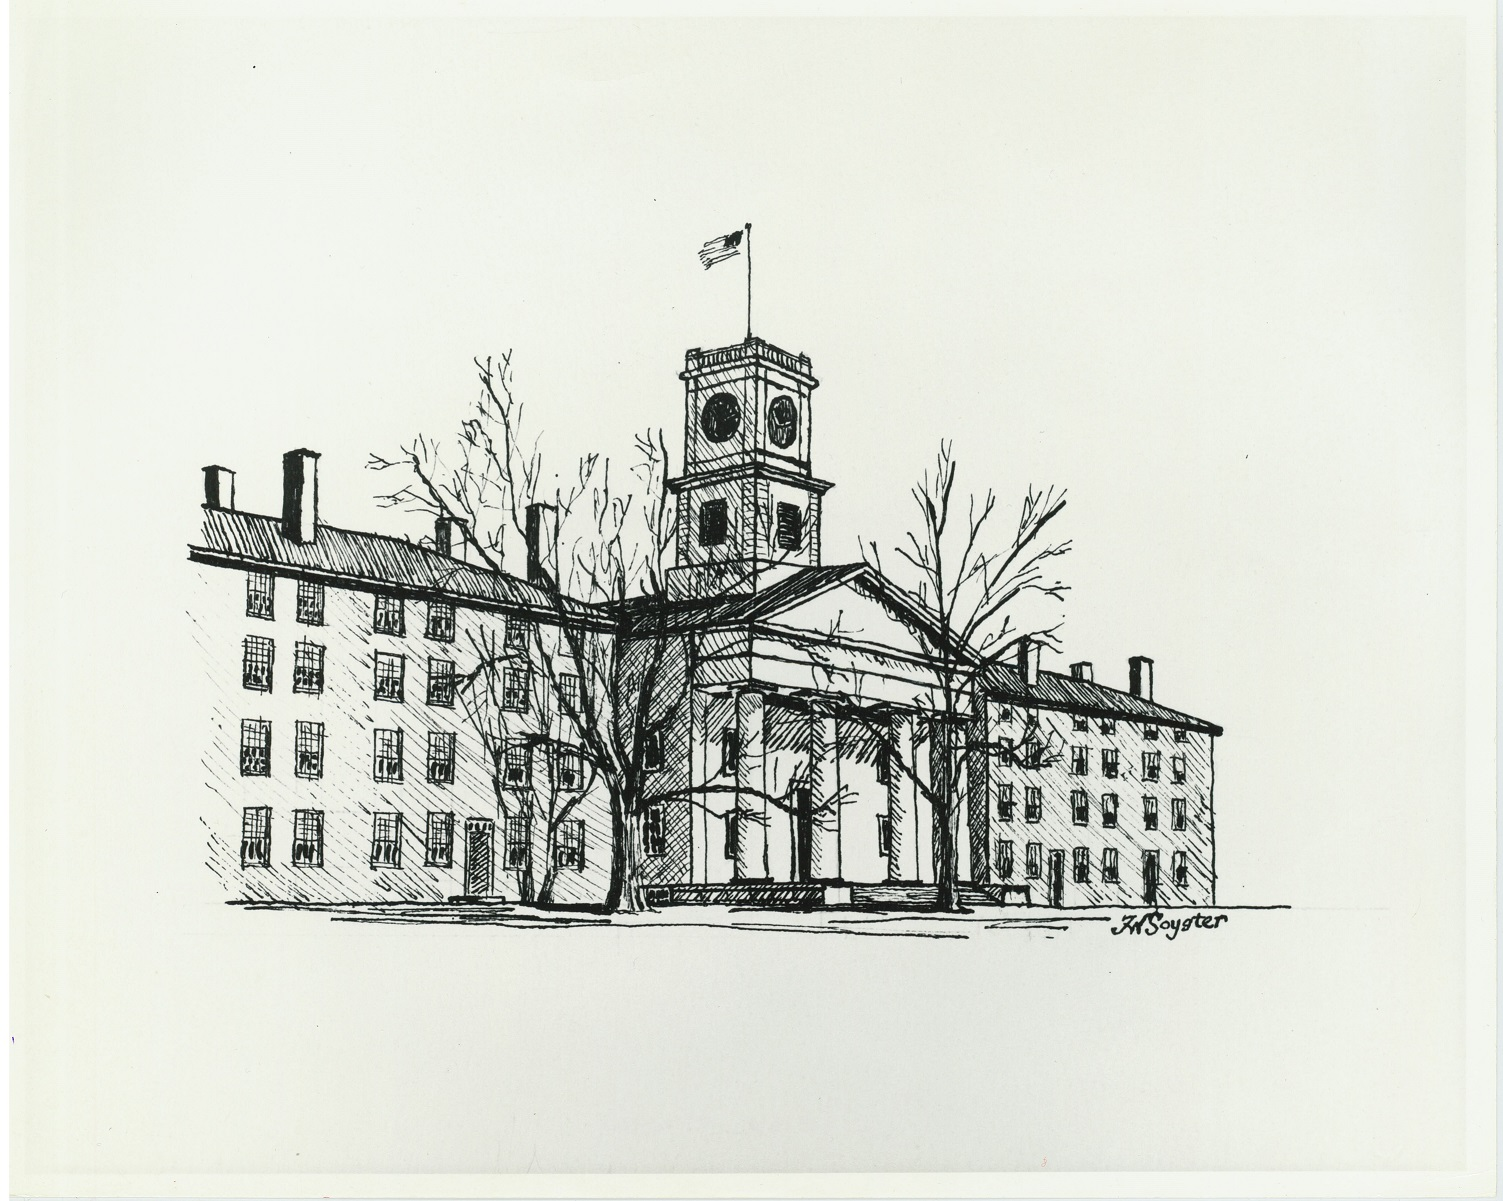 Two four-story brick building with chimneys stand on either side of a chapel fronted by columns. An American flag flies from the clock tower. The trees in front of the buildings are bare.